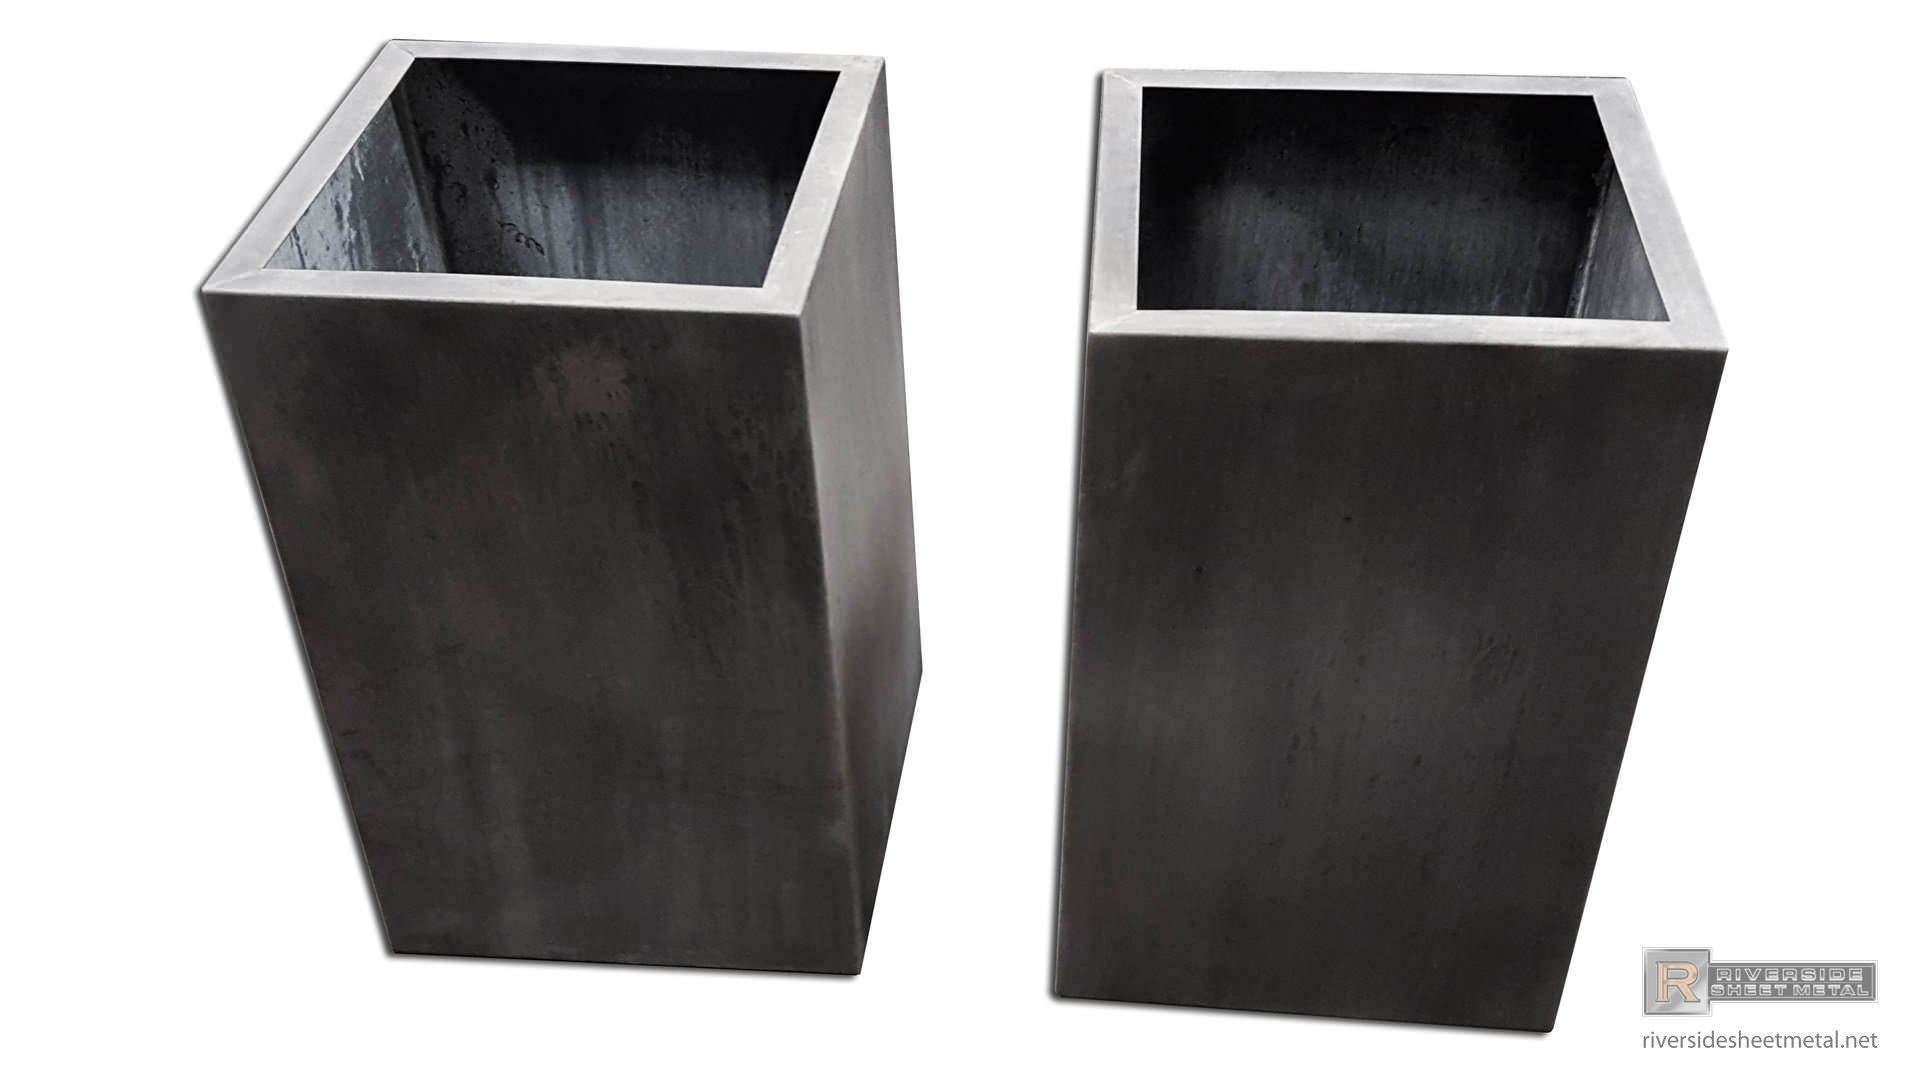 Zinc Planters Square Html on square aluminum planters, square iron planters, square stone planters, square brass planters, square outdoor planters, square tin planters, square terracotta planters, square fiberglass planters, square lead planters, square plastic planters, square white planters, square garden planters,